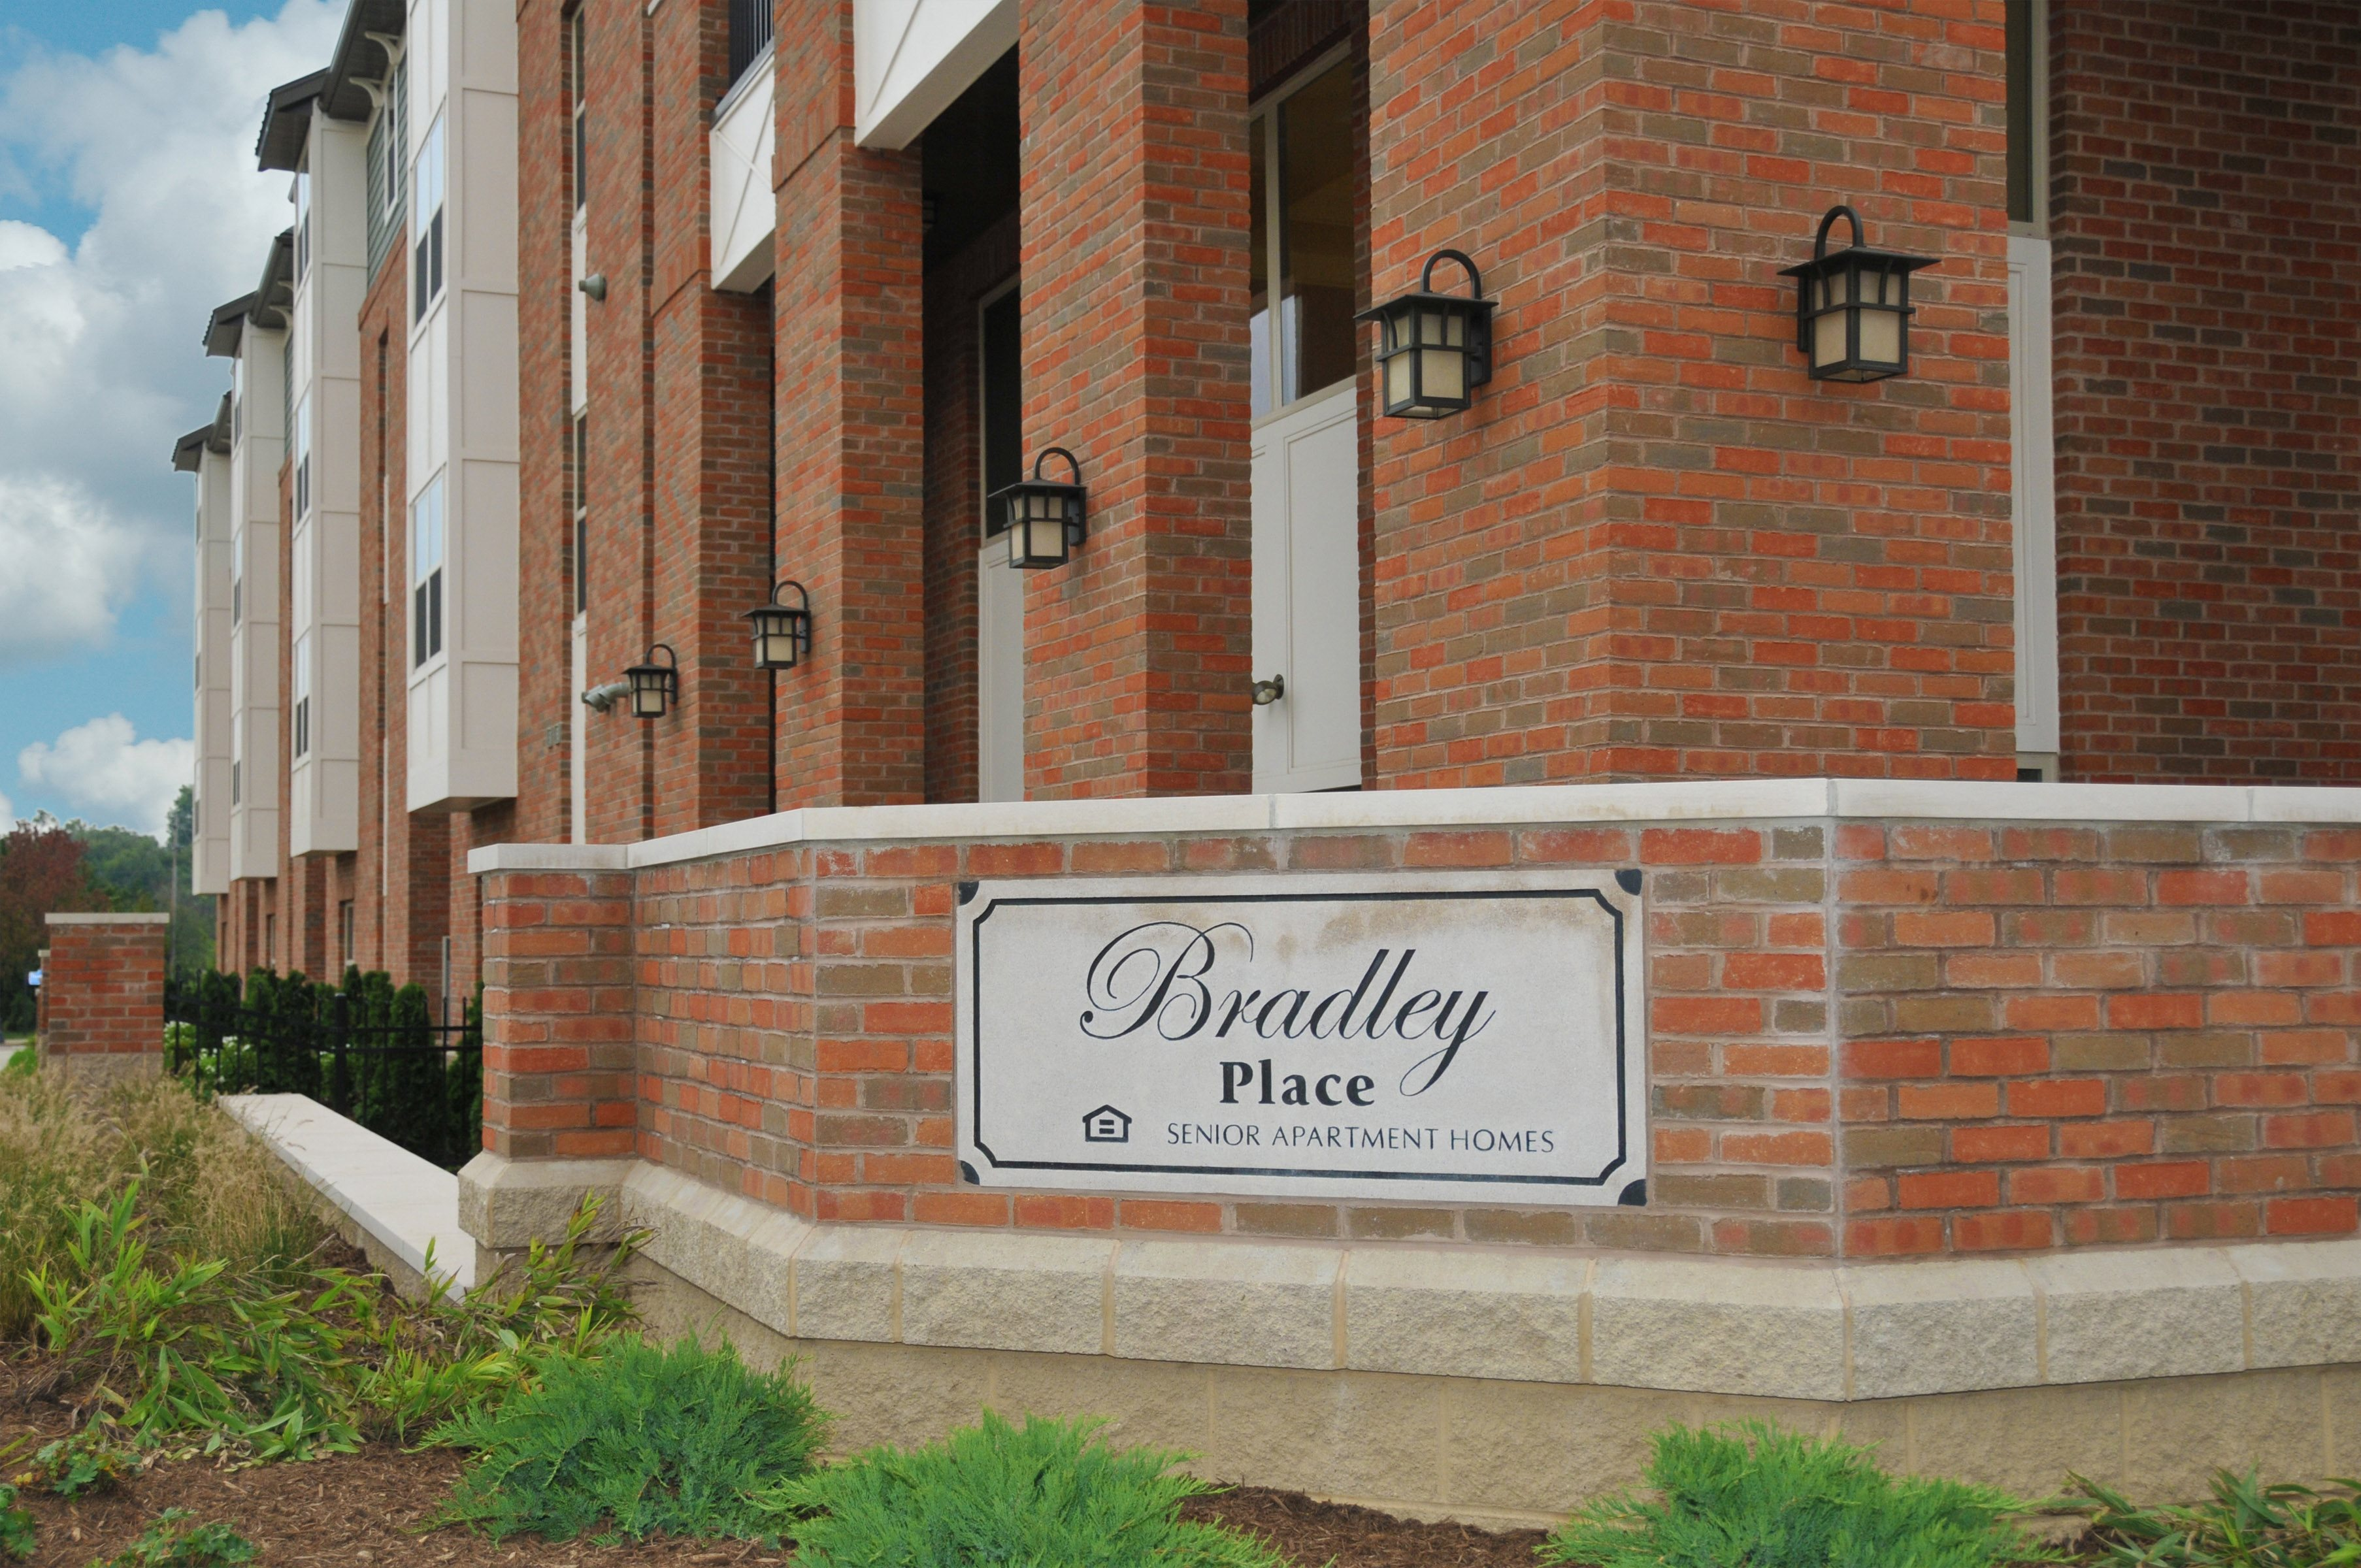 Image of Bradley Place Senior Apartment Homes in Massillon, Ohio